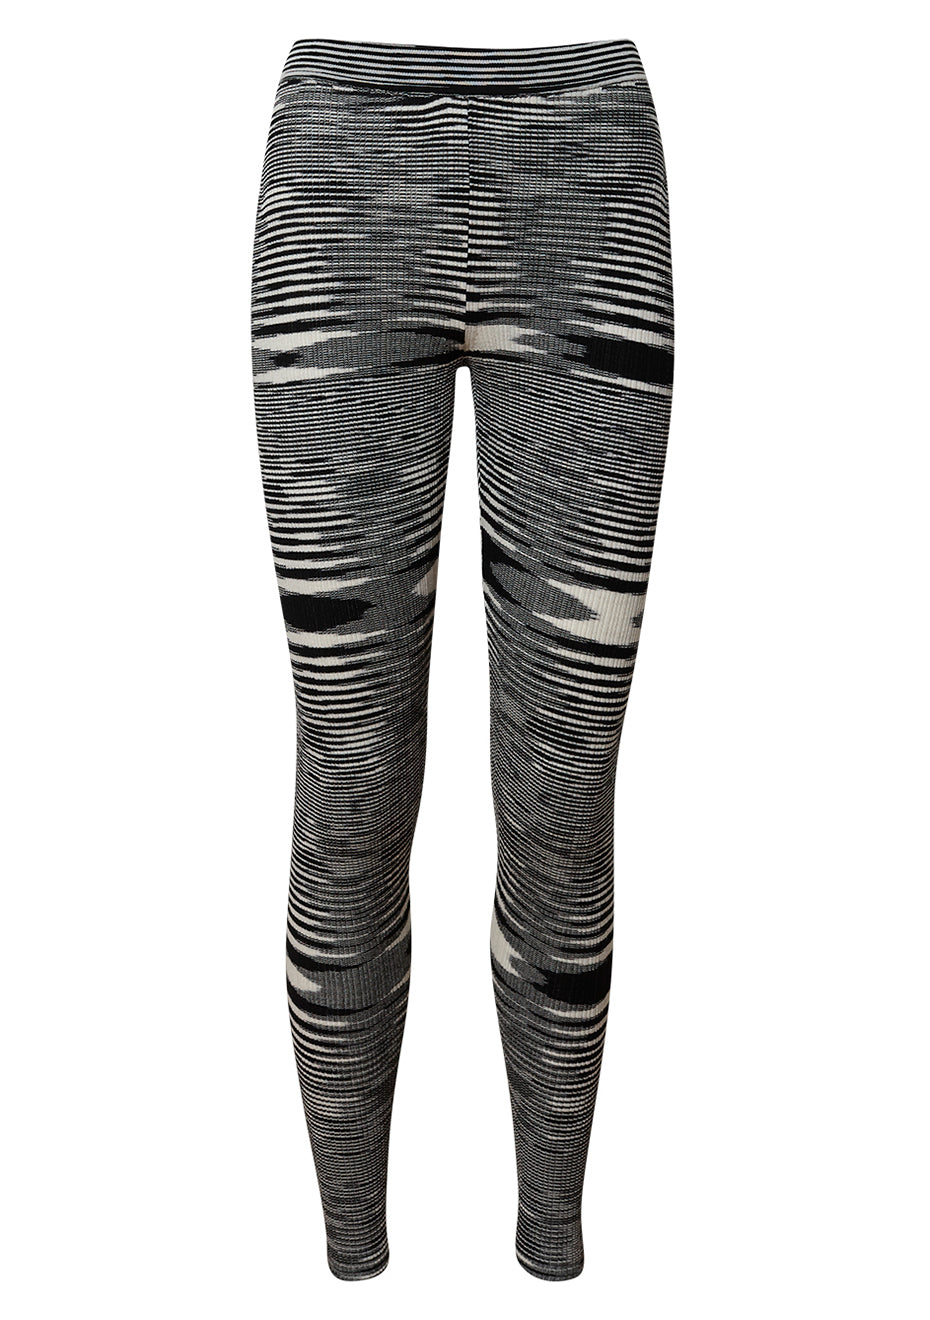 Black Striped Leggings